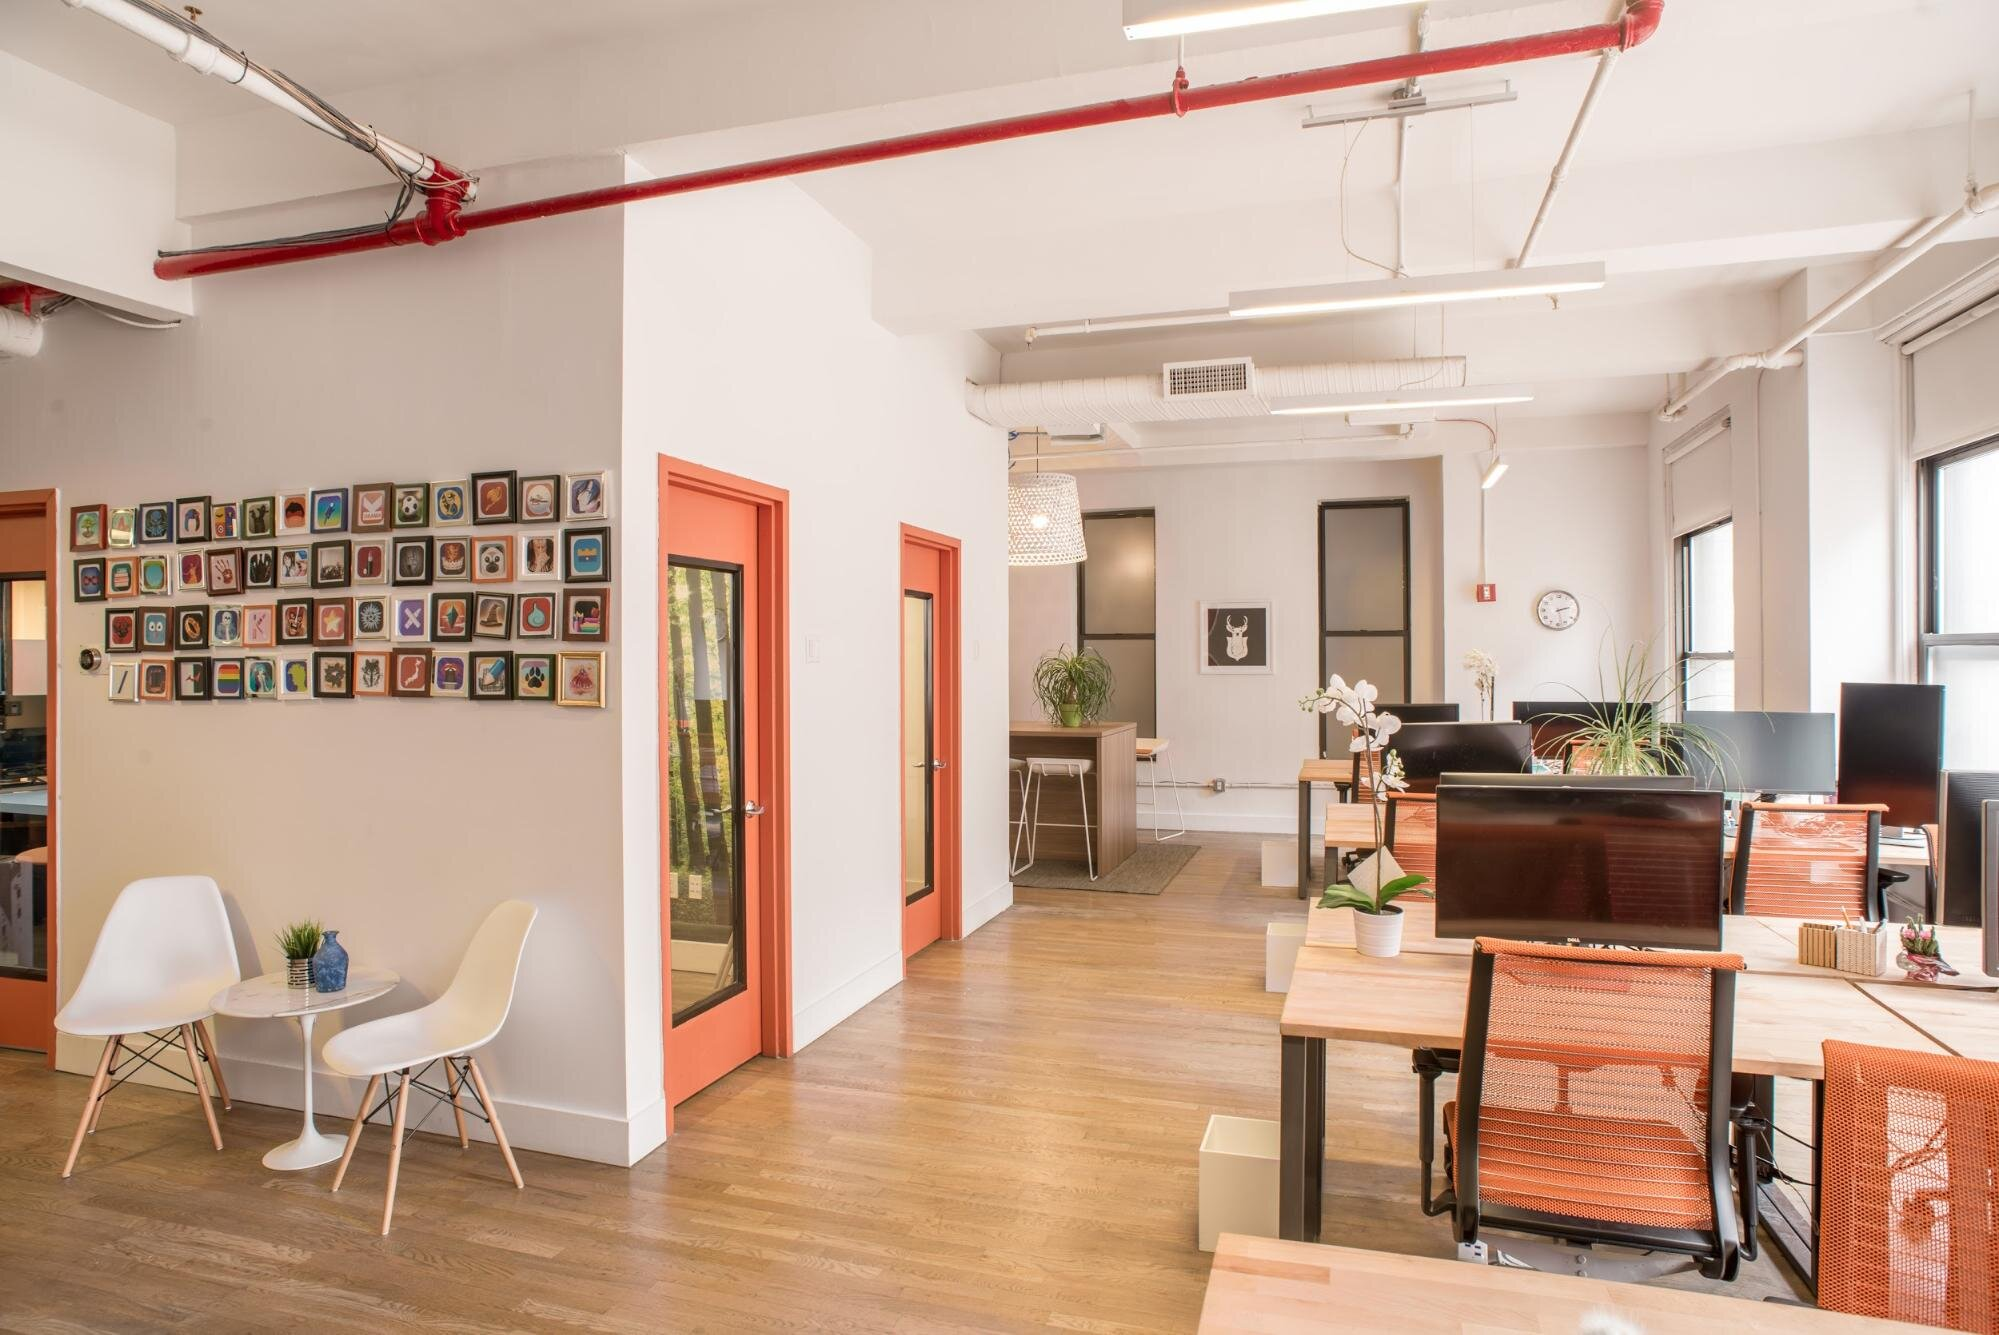 Shared office with several desks, white walls, and red doors